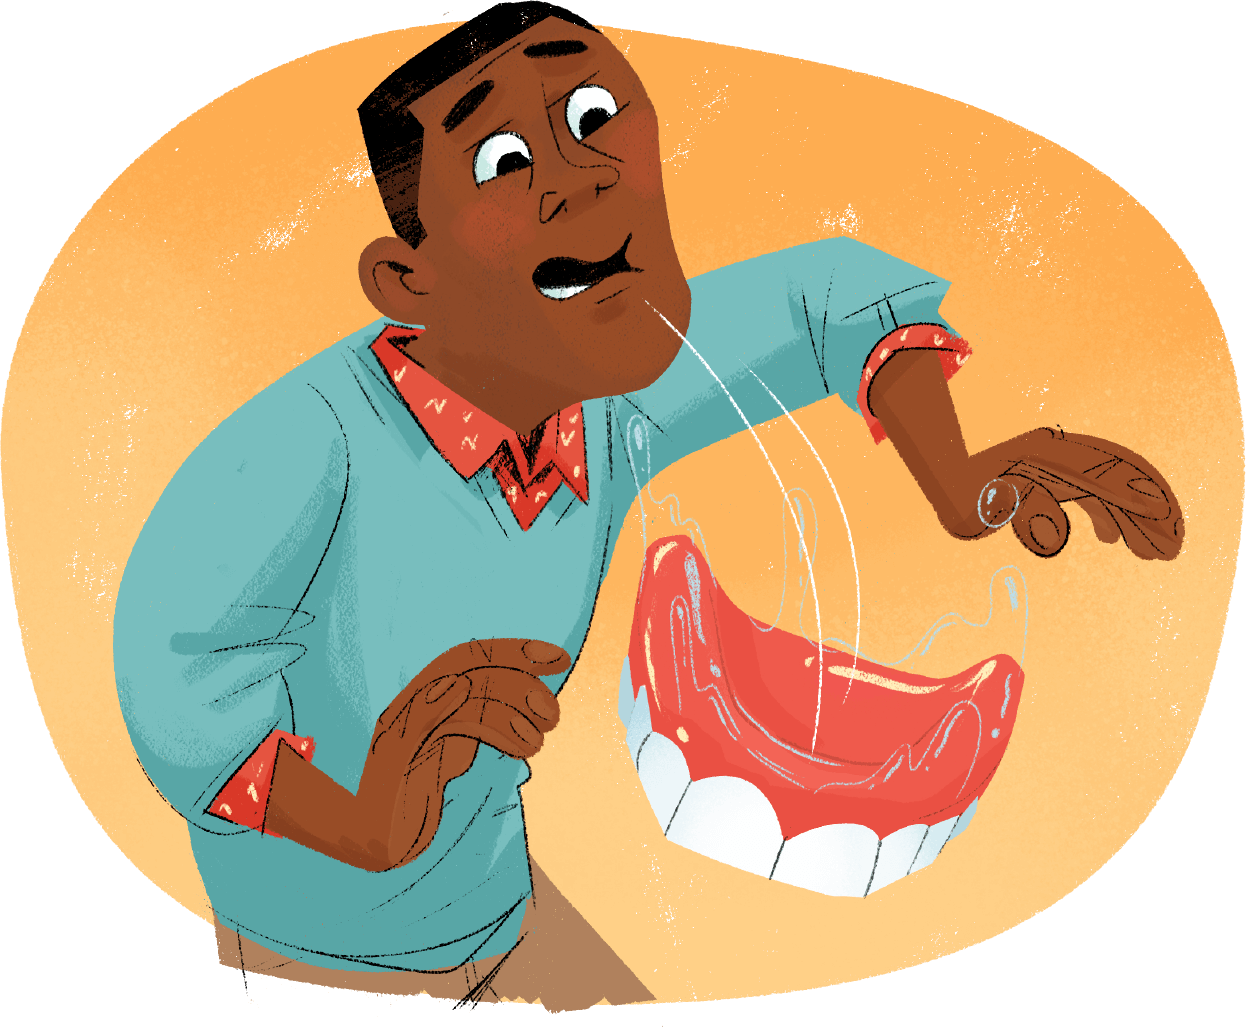 Illustration of African American male with dentures coming out of mouth